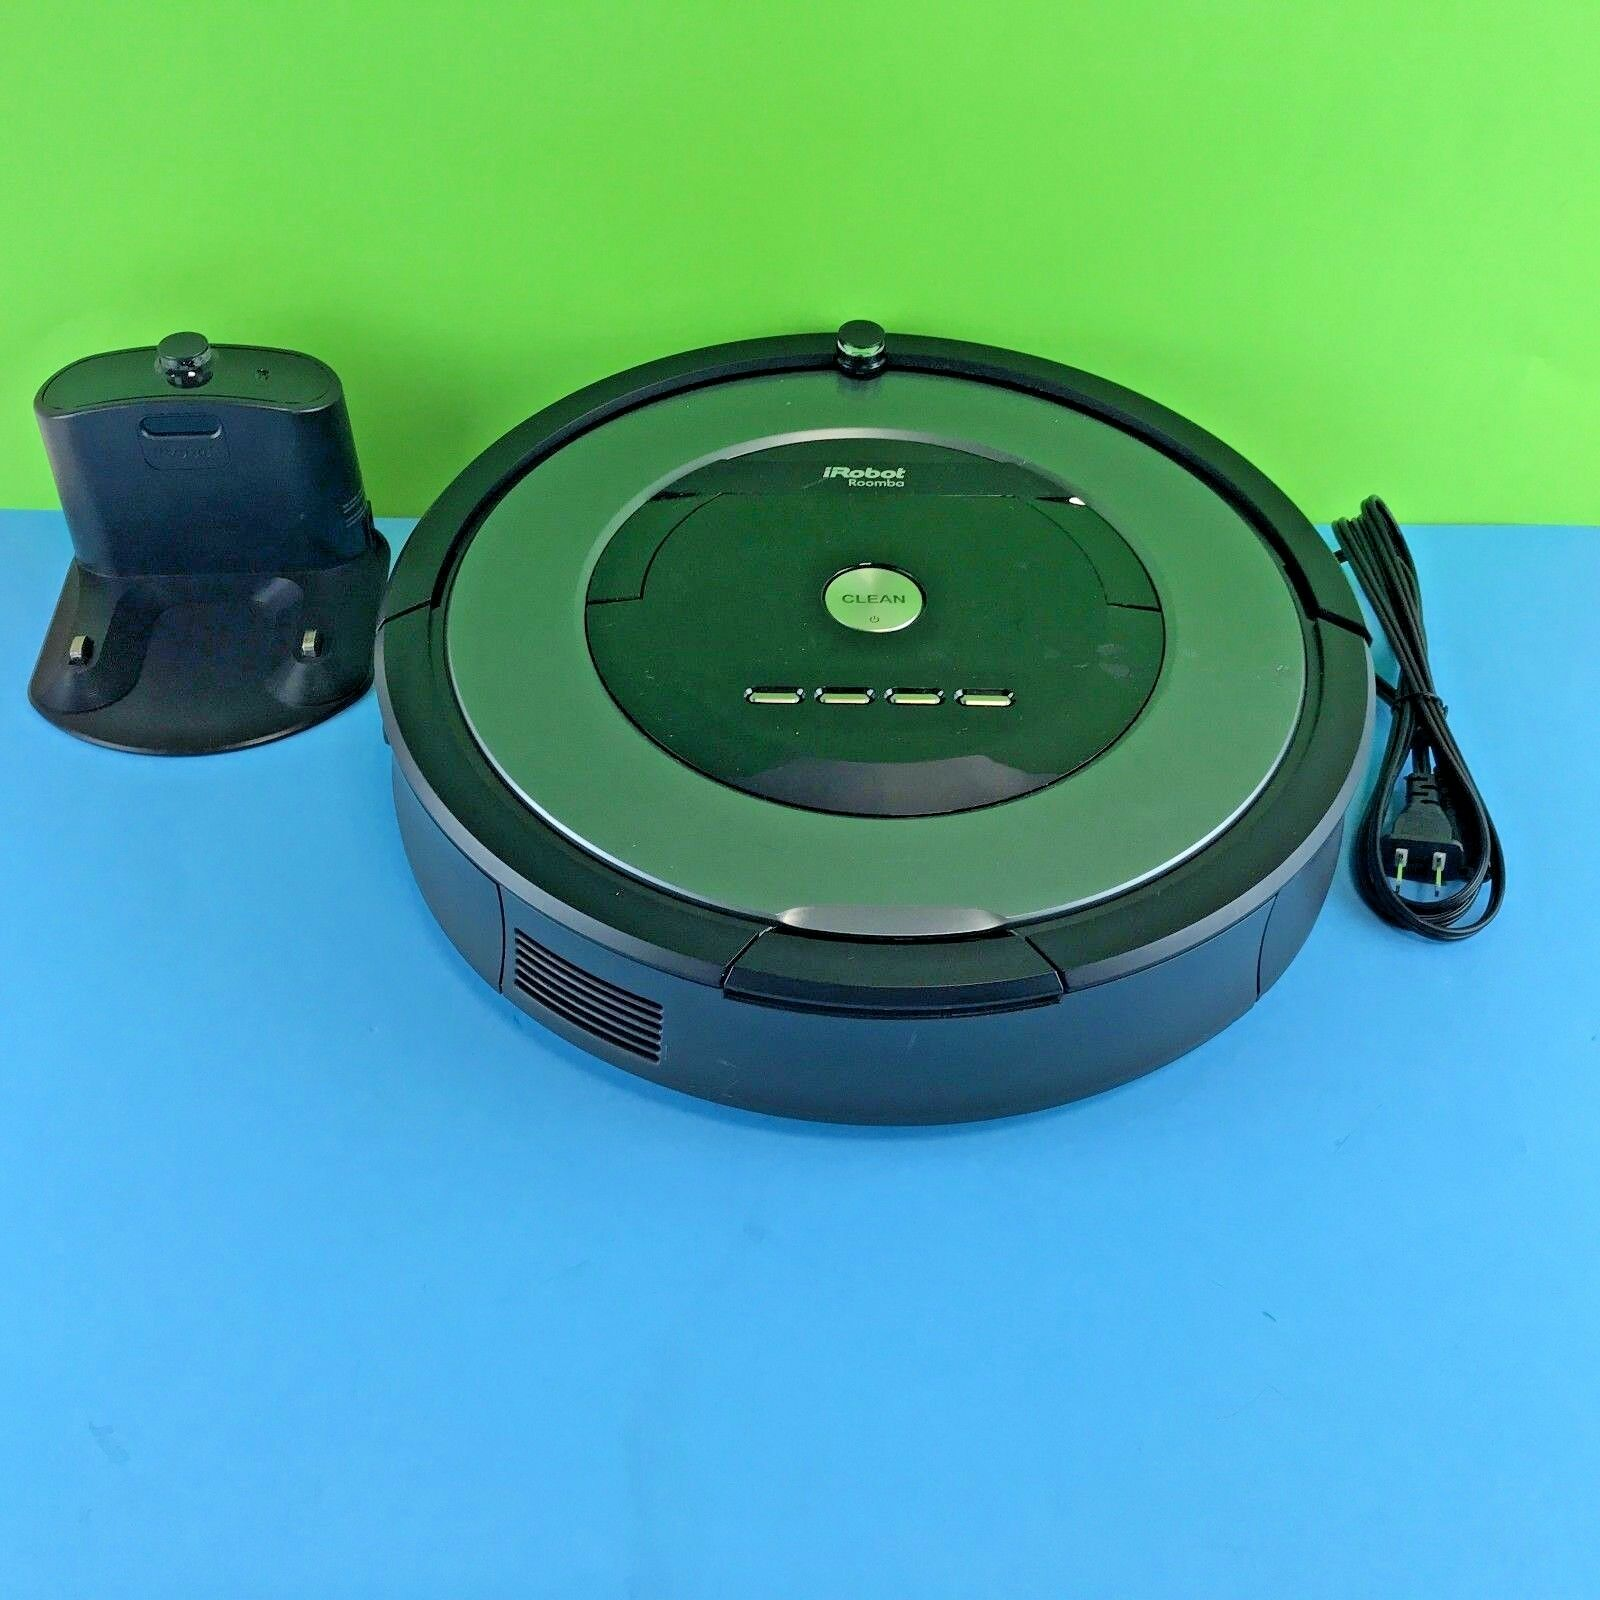 IRobot Roomba 877 Robotic Vacuum Cleaner with Charging Base Station vac